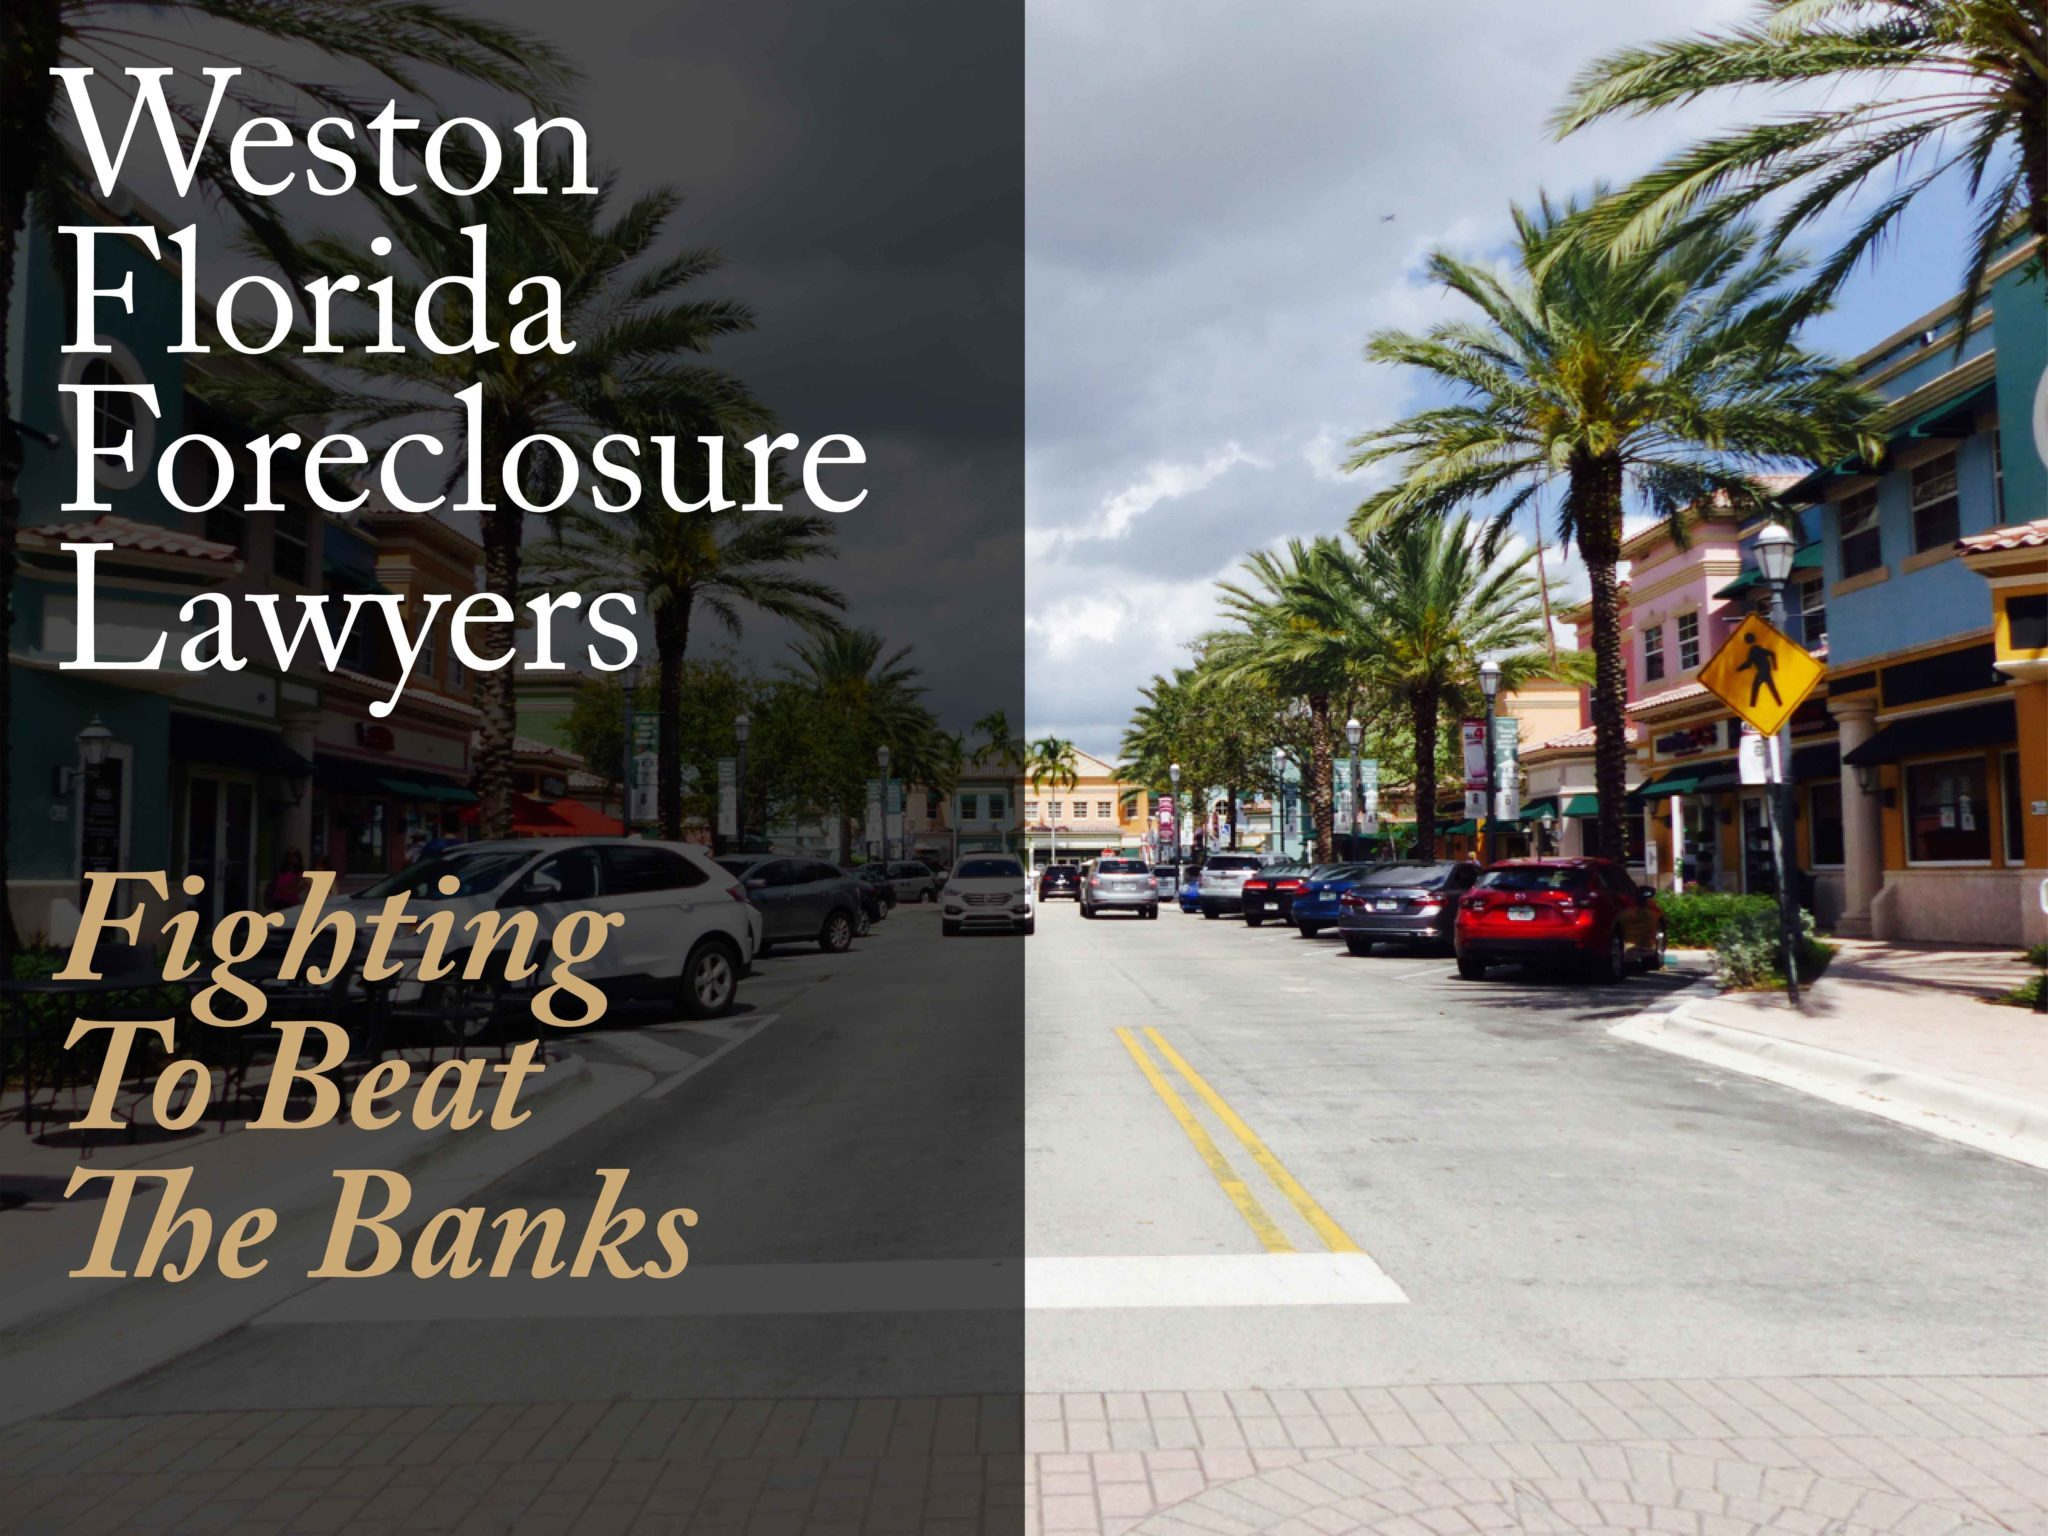 Text: Weston Florida Foreclosure Lawyers Fighting to Beat the Bank Picture: Weston Florida Town center main street